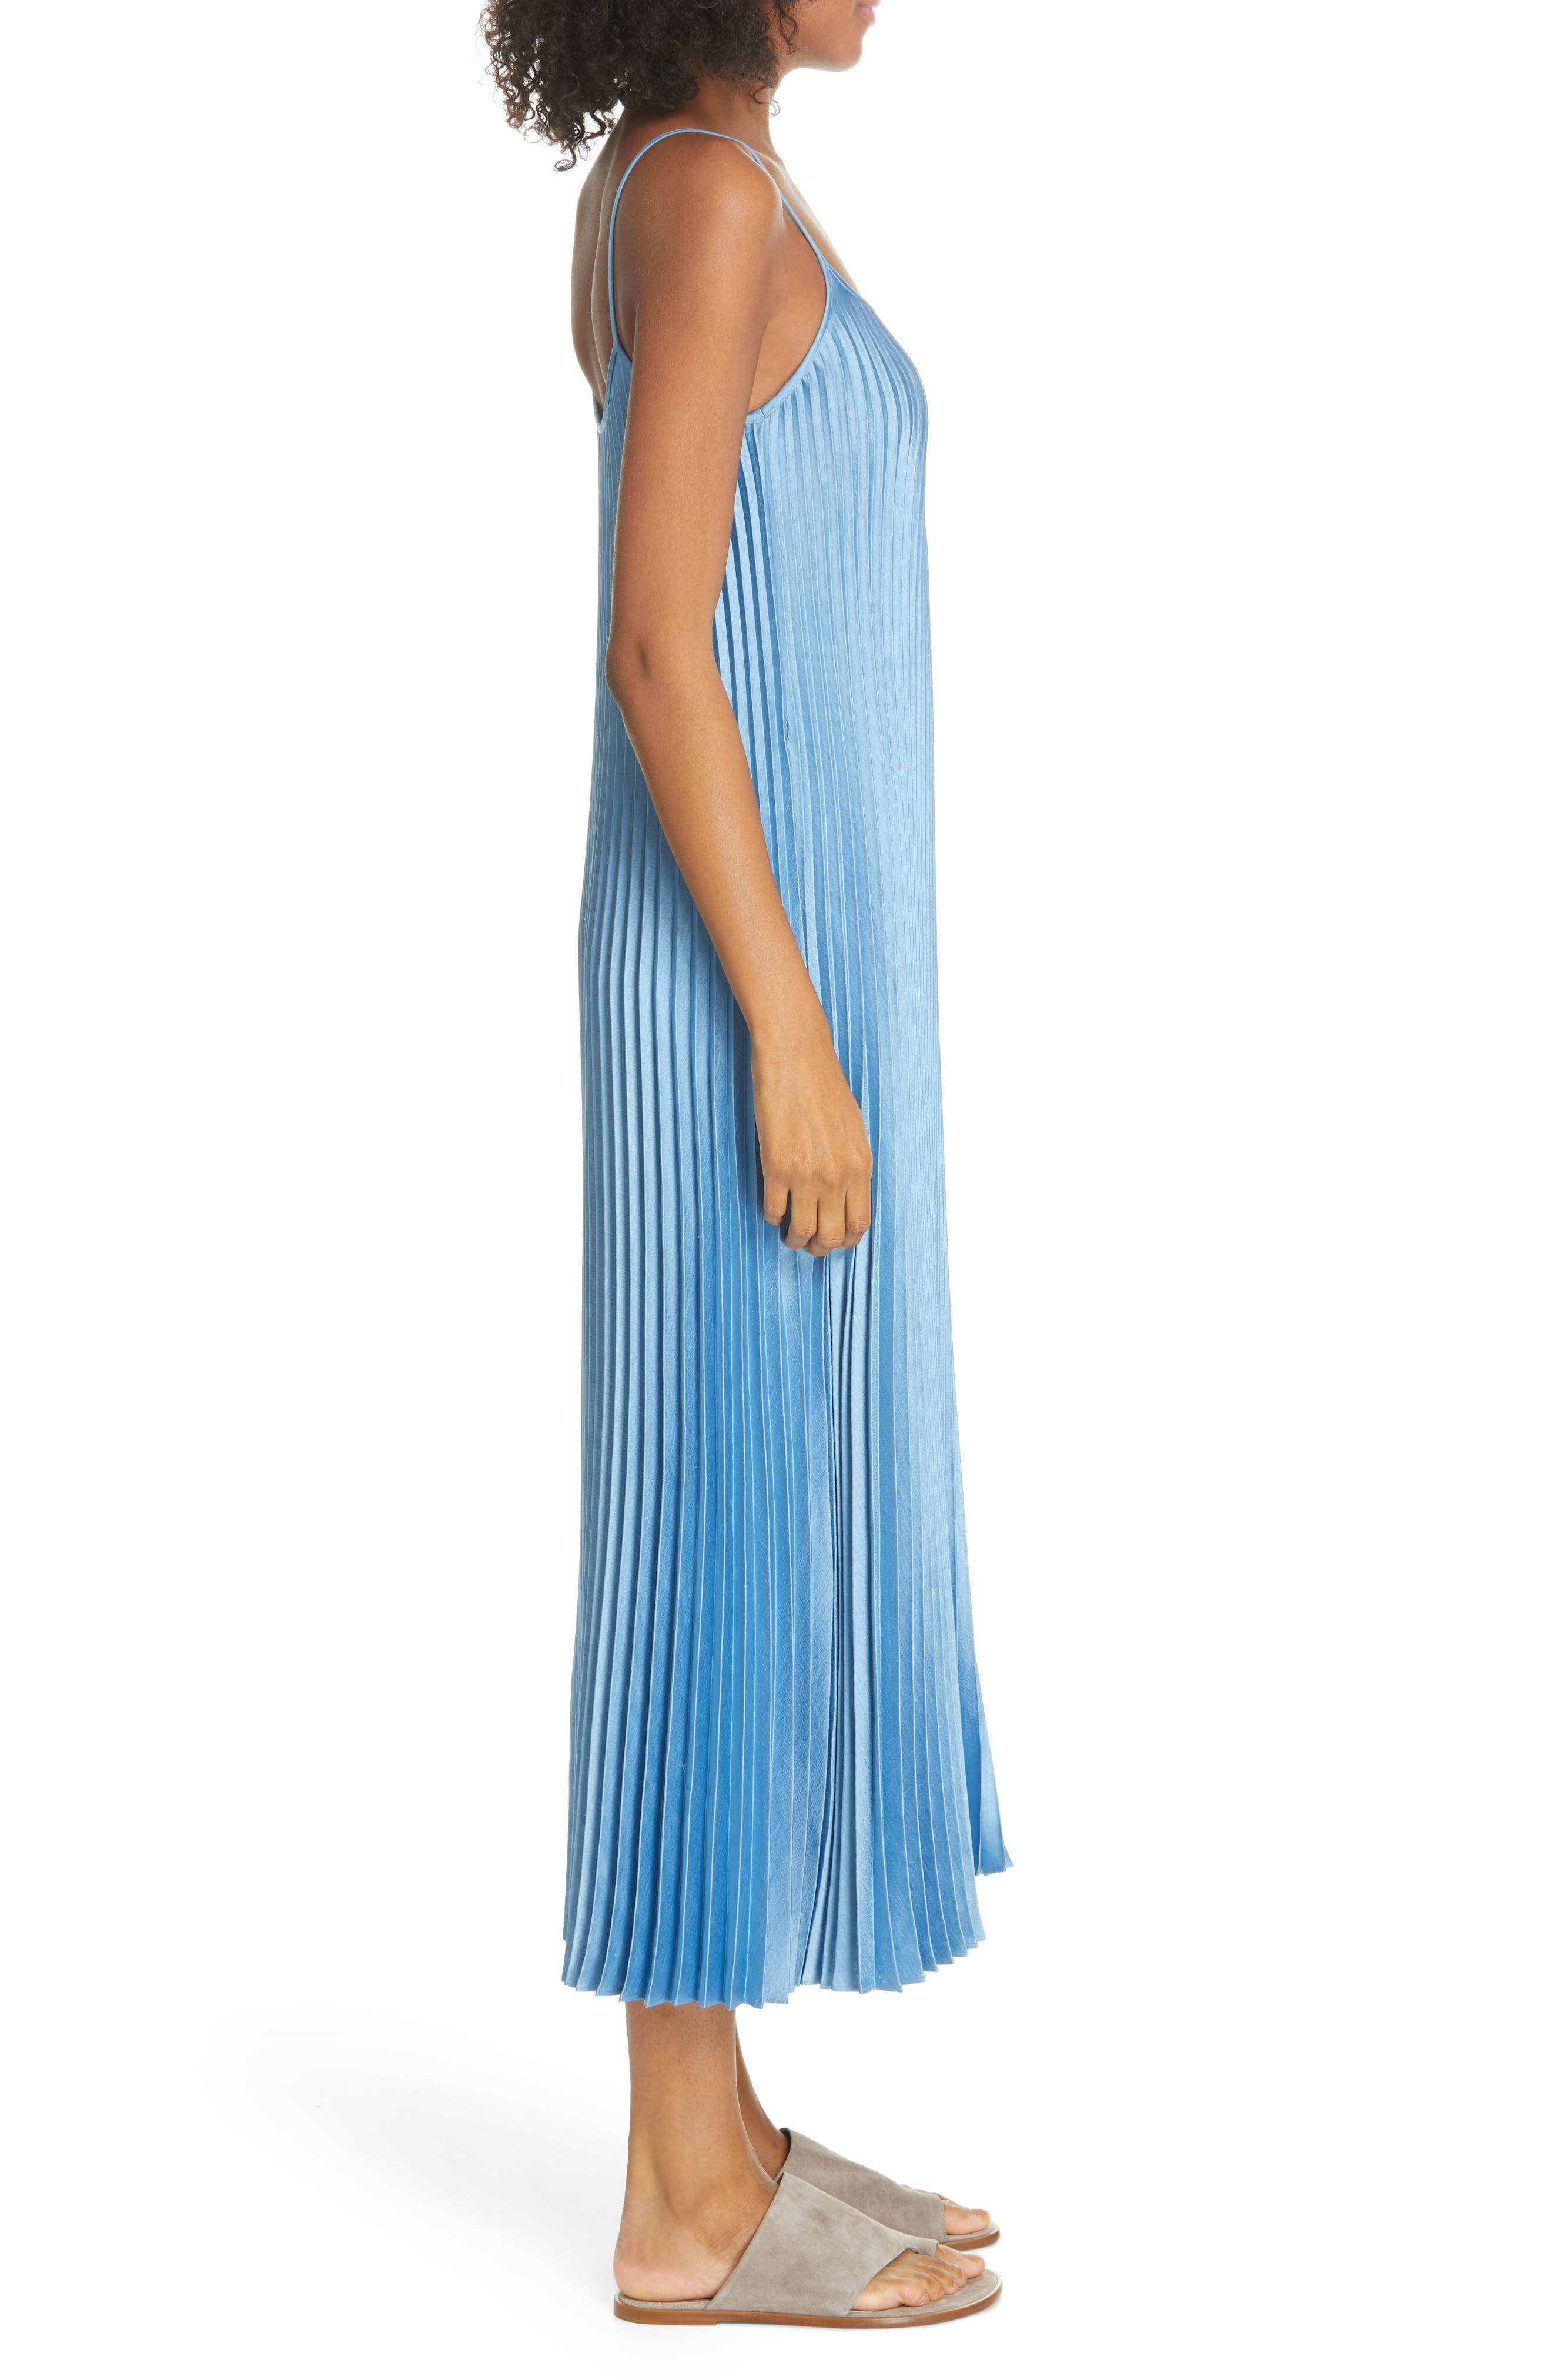 VINCE, Pleated Satin Slipdress, Alternate thumbnail 4, color, BLUE PUMICE